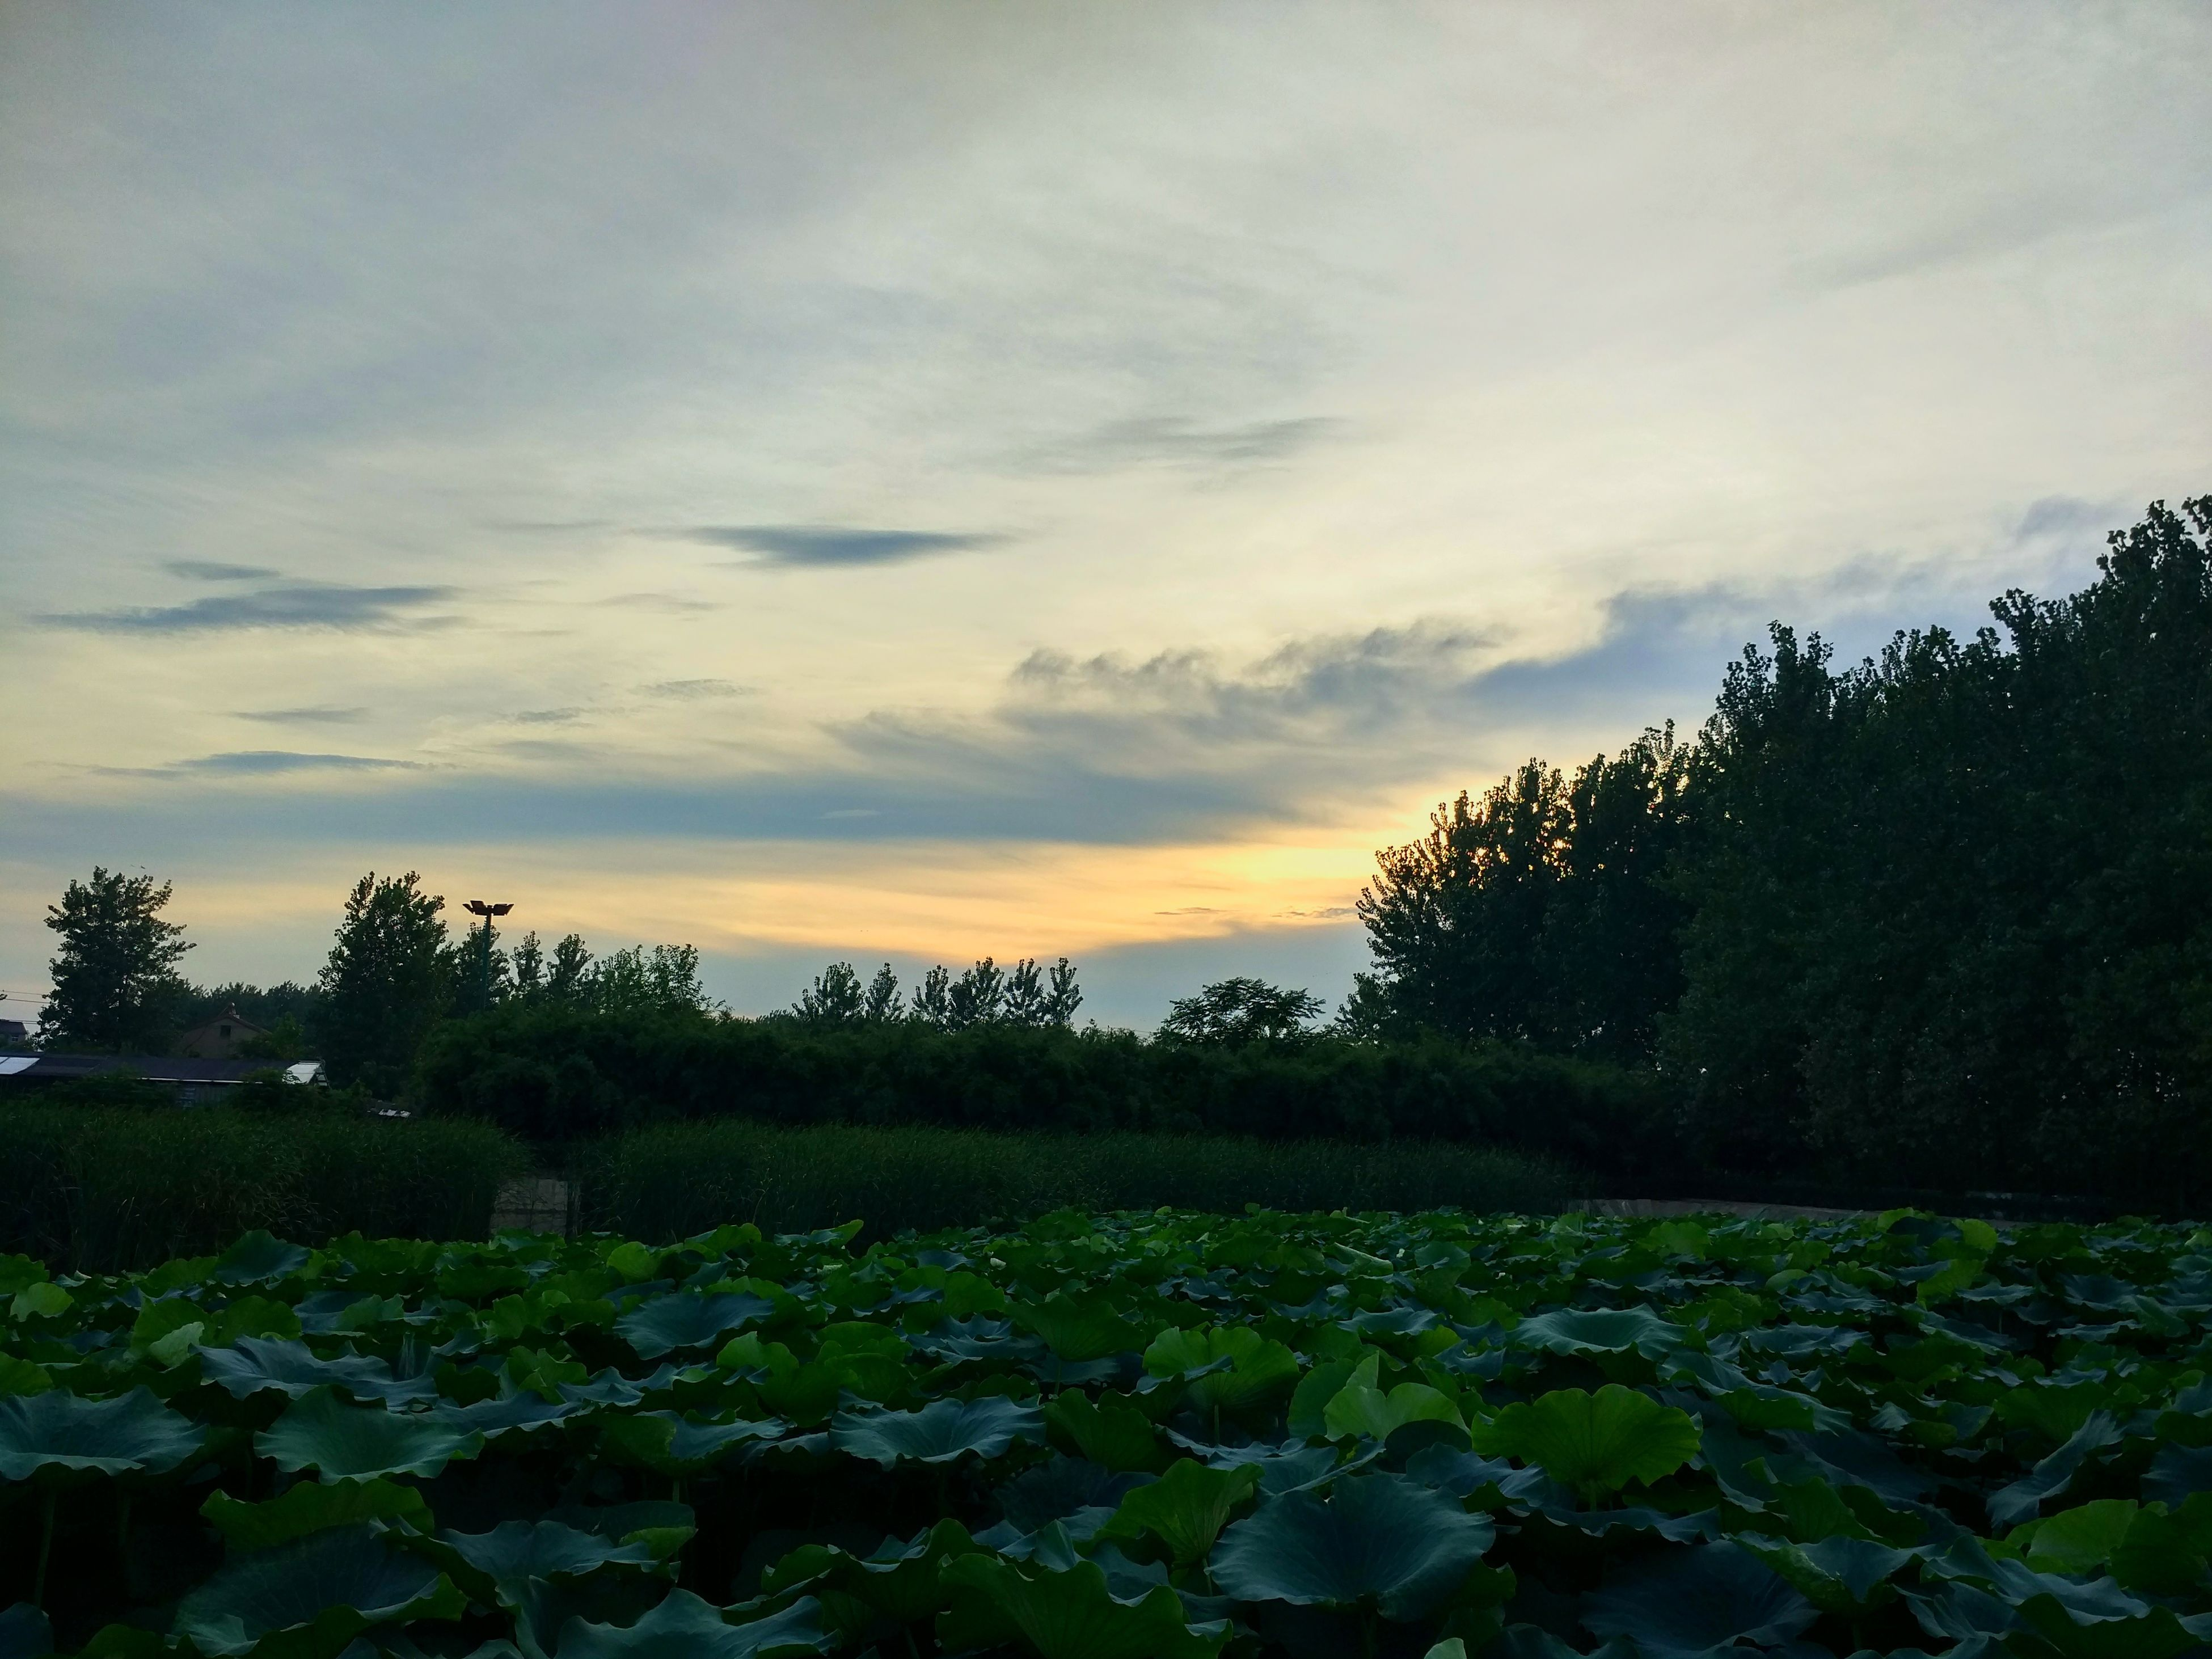 nature, beauty in nature, sunset, scenics, tranquility, sky, growth, tree, tranquil scene, no people, water, cloud - sky, lake, outdoors, leaf, plant, day, freshness